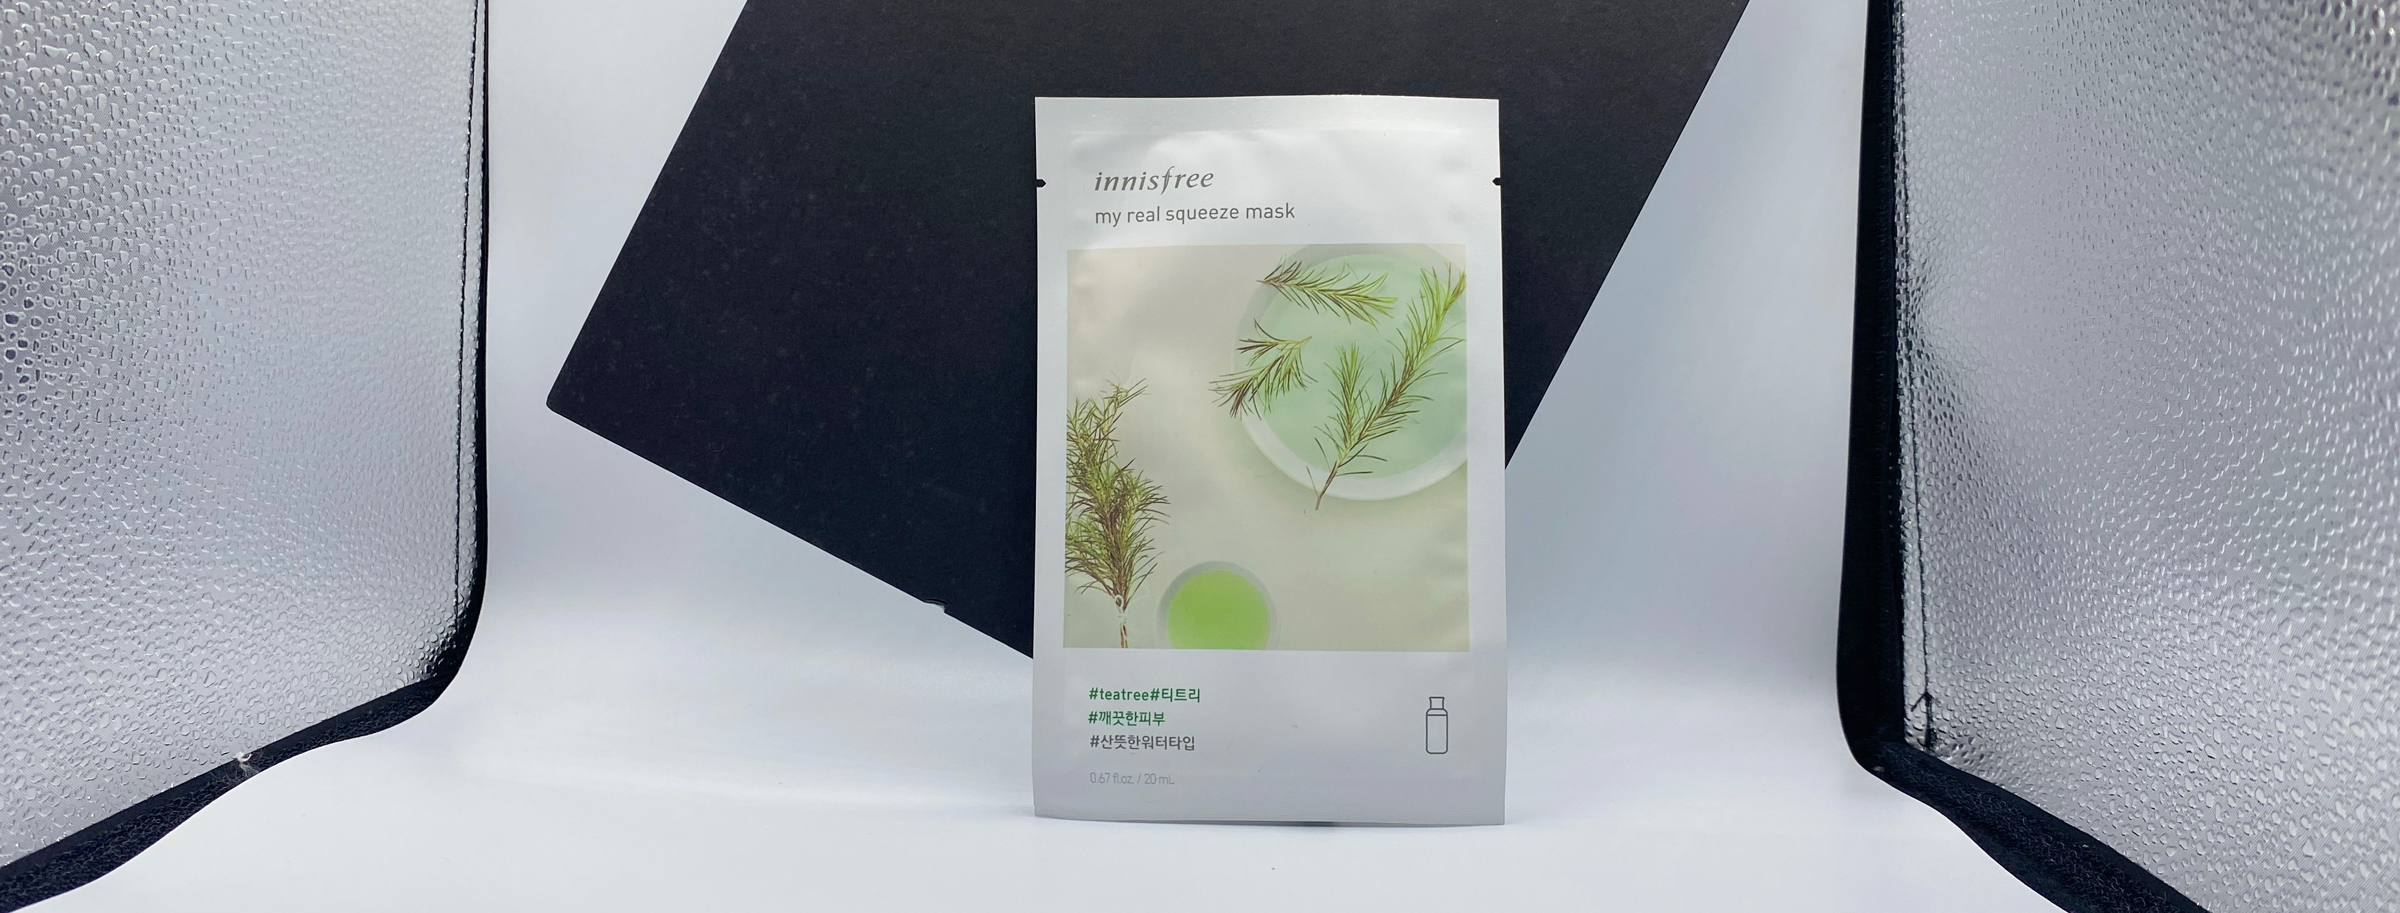 REVIEW   Innisfree My Real Squeeze Mask #Tea Tree